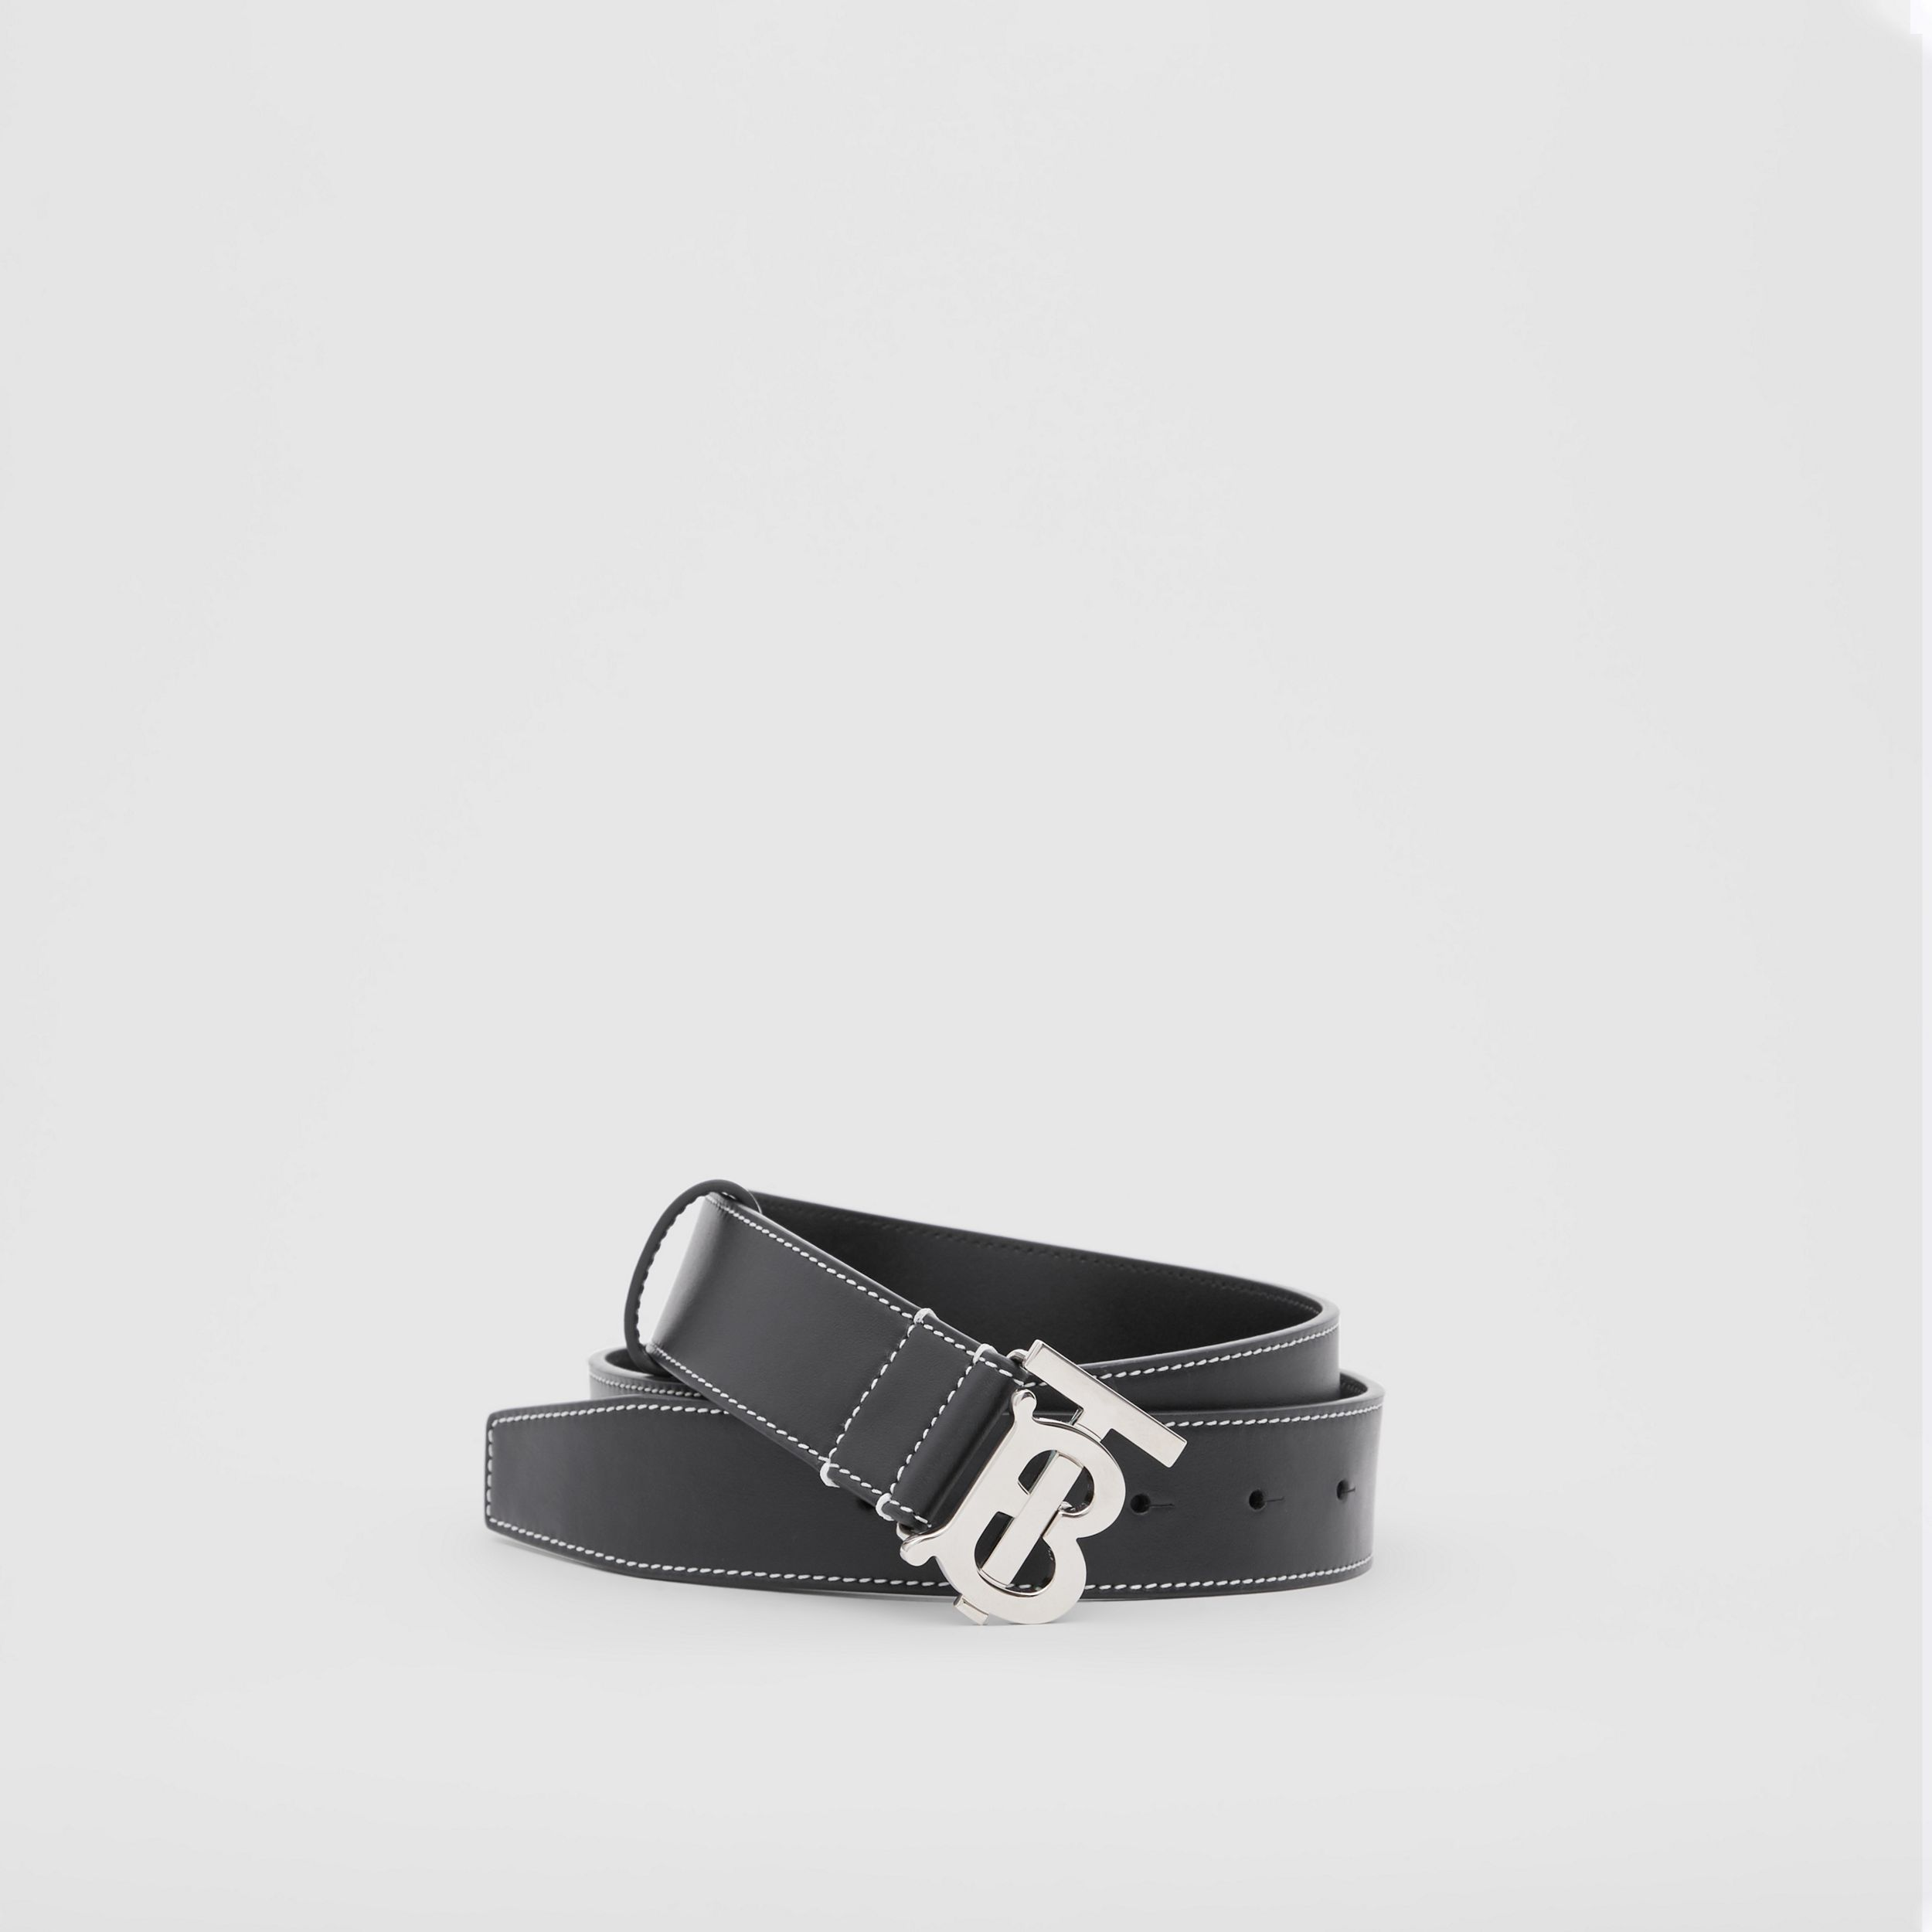 Monogram Motif Topstitched Leather Belt in Black - Men | Burberry Hong Kong S.A.R. - 1